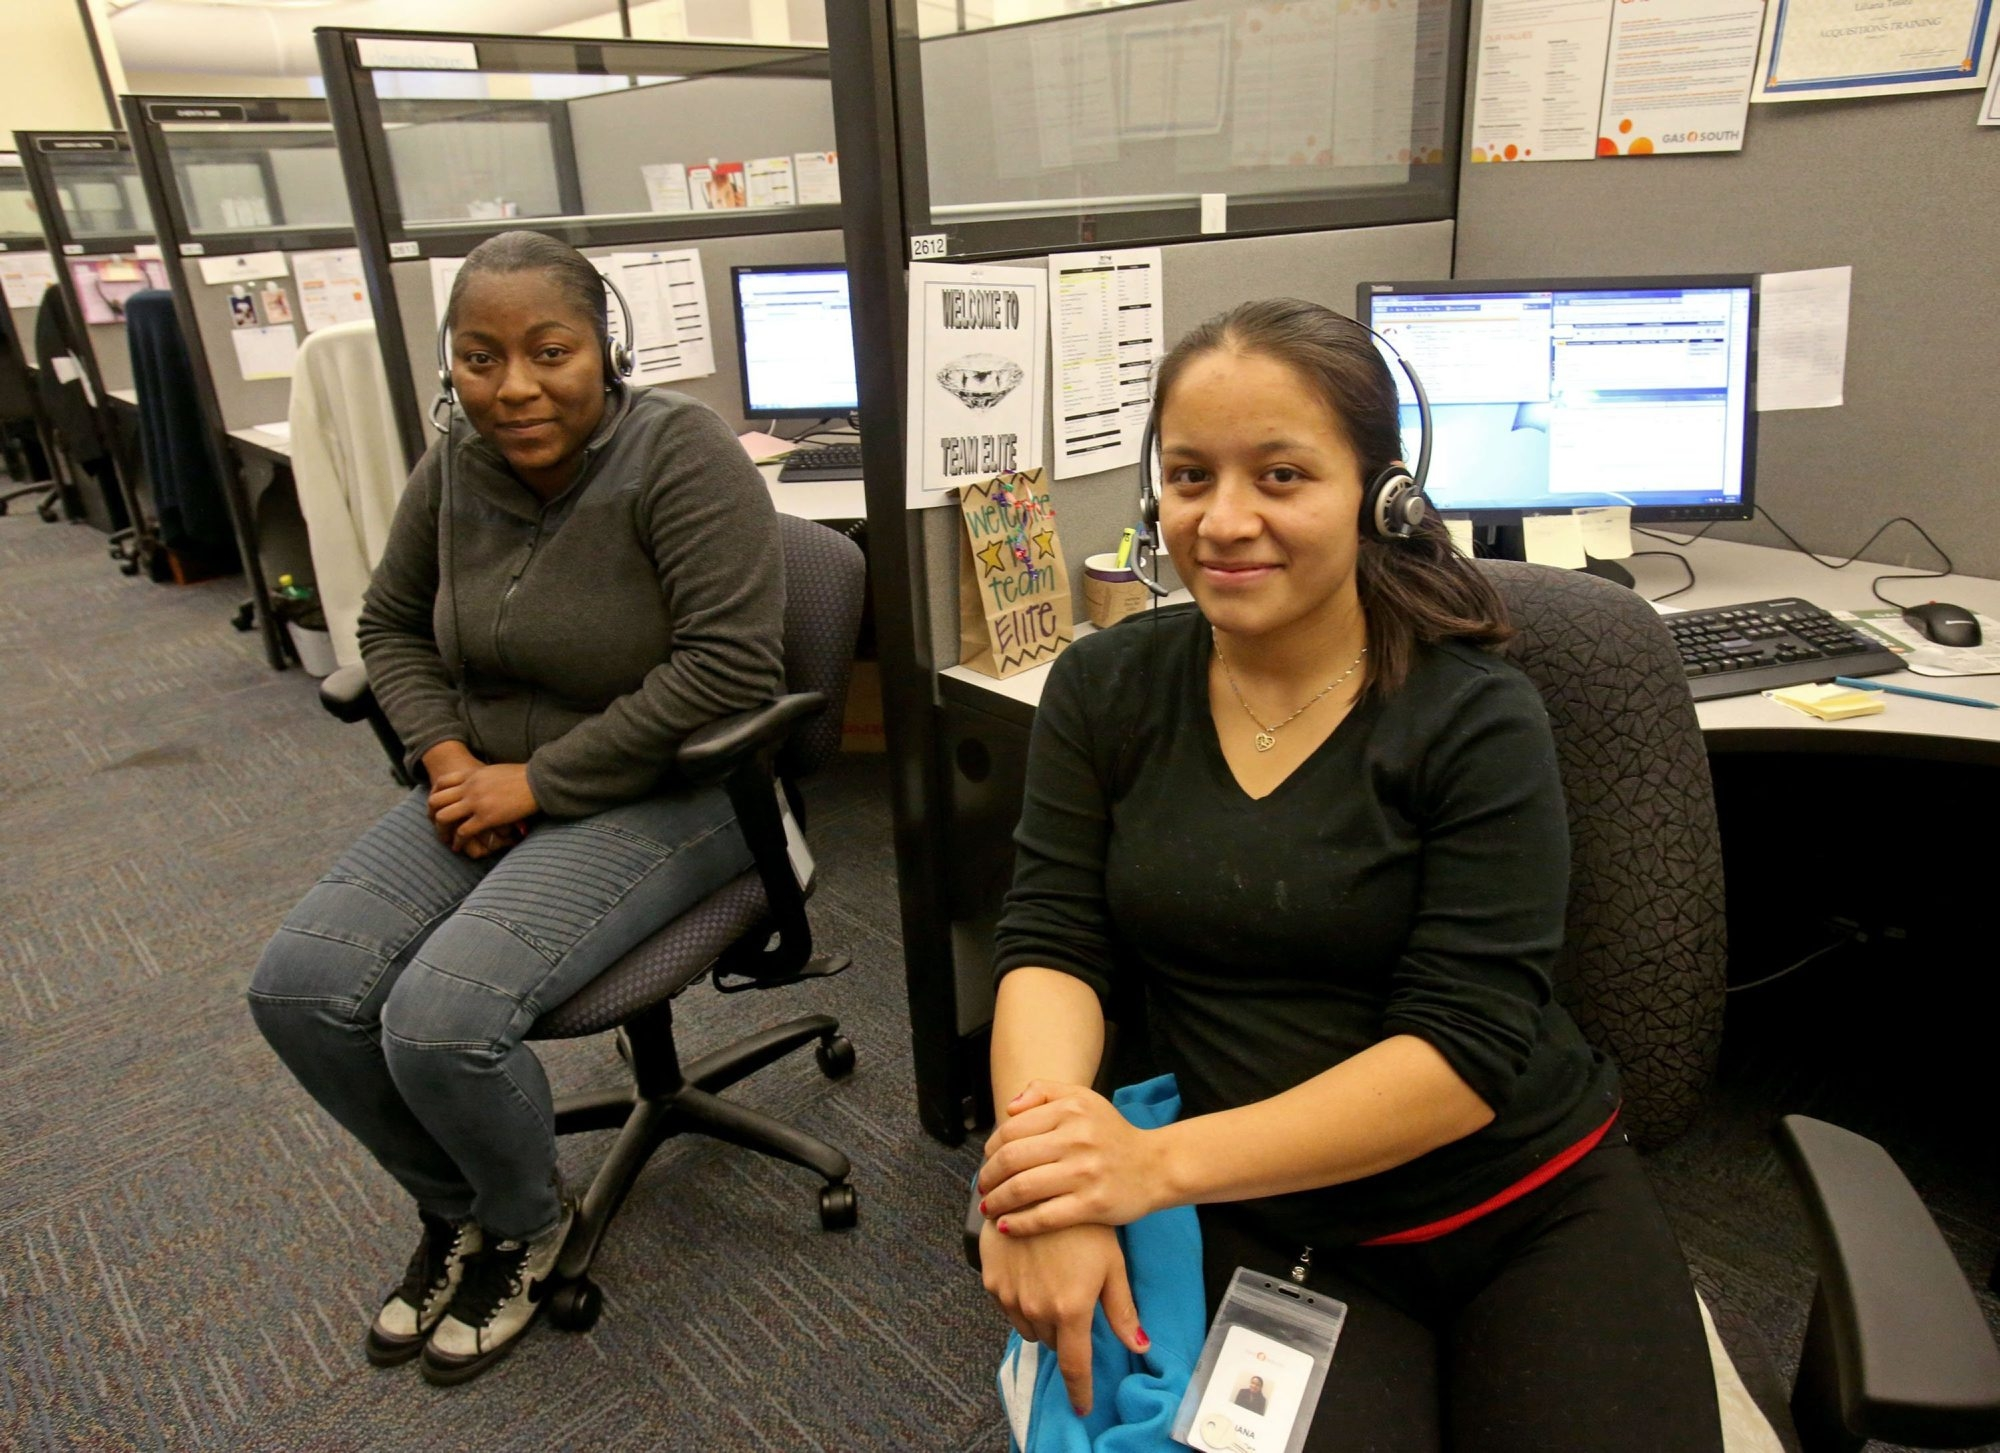 Gas South customer service representatives Jomicka Green, left, and Liliana Tapia next to their cubicles in the customer care department  in Marietta, Ga.